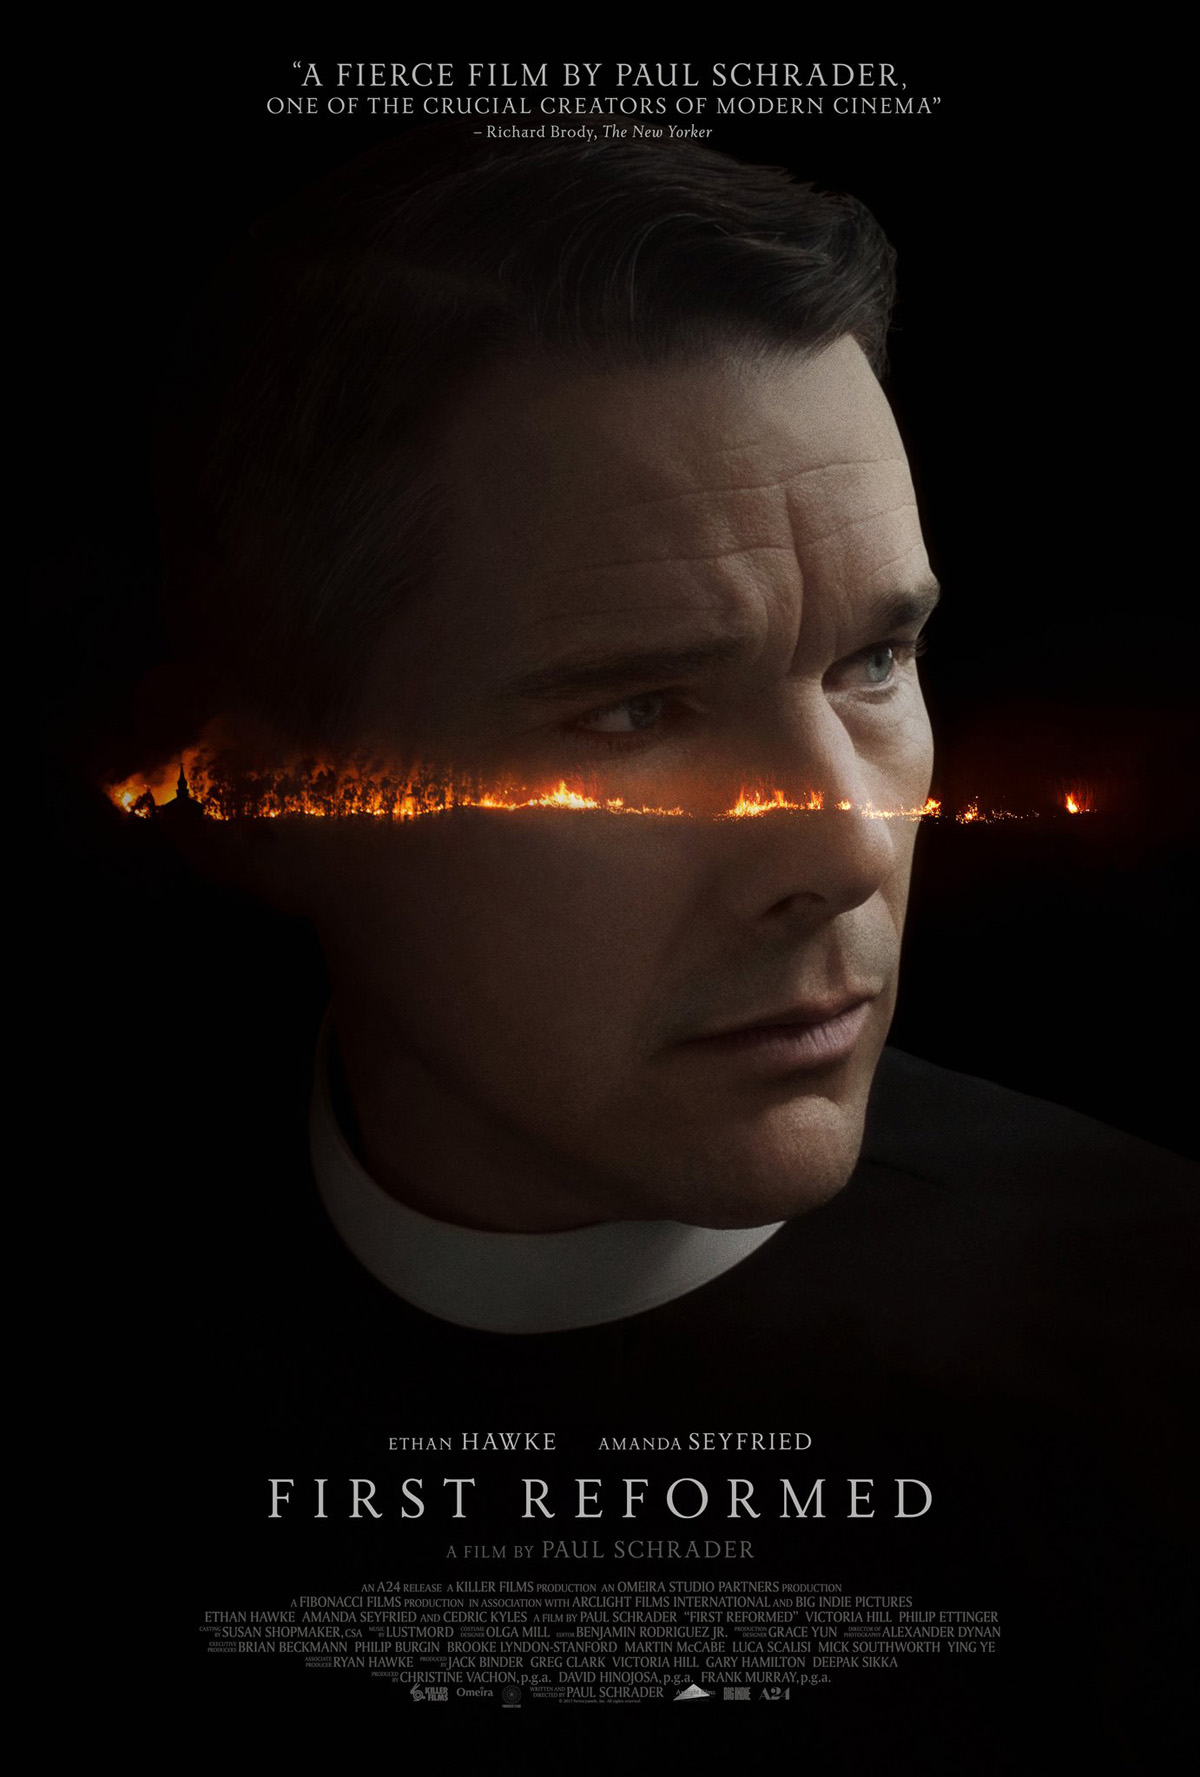 First Reformed   (2018) dir. Paul Schrader Rated: R image: ©2018  A24